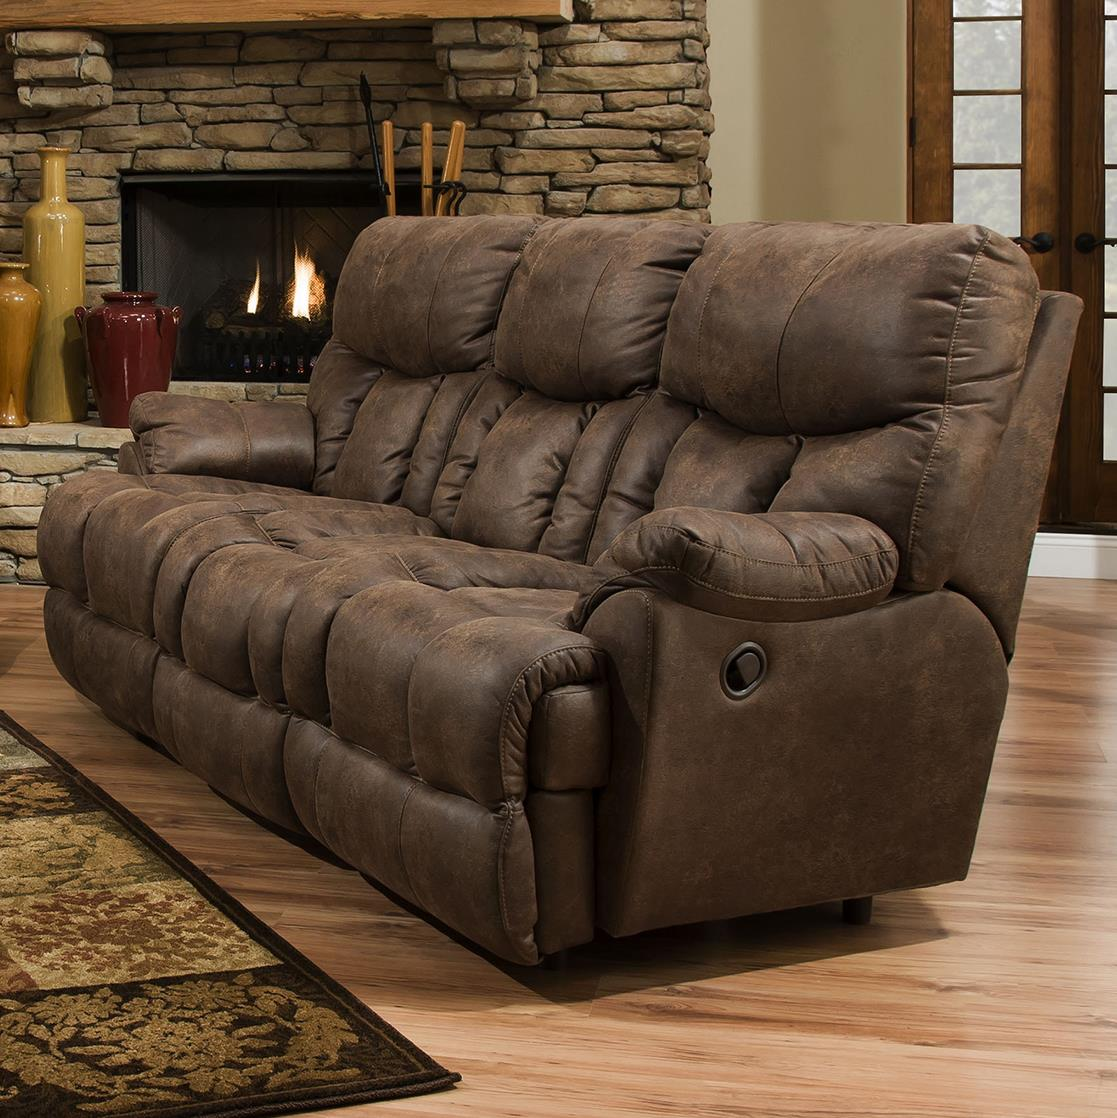 franklin mammoth power reclining sofa with extra tall and wide seats miskelly furniture. Black Bedroom Furniture Sets. Home Design Ideas